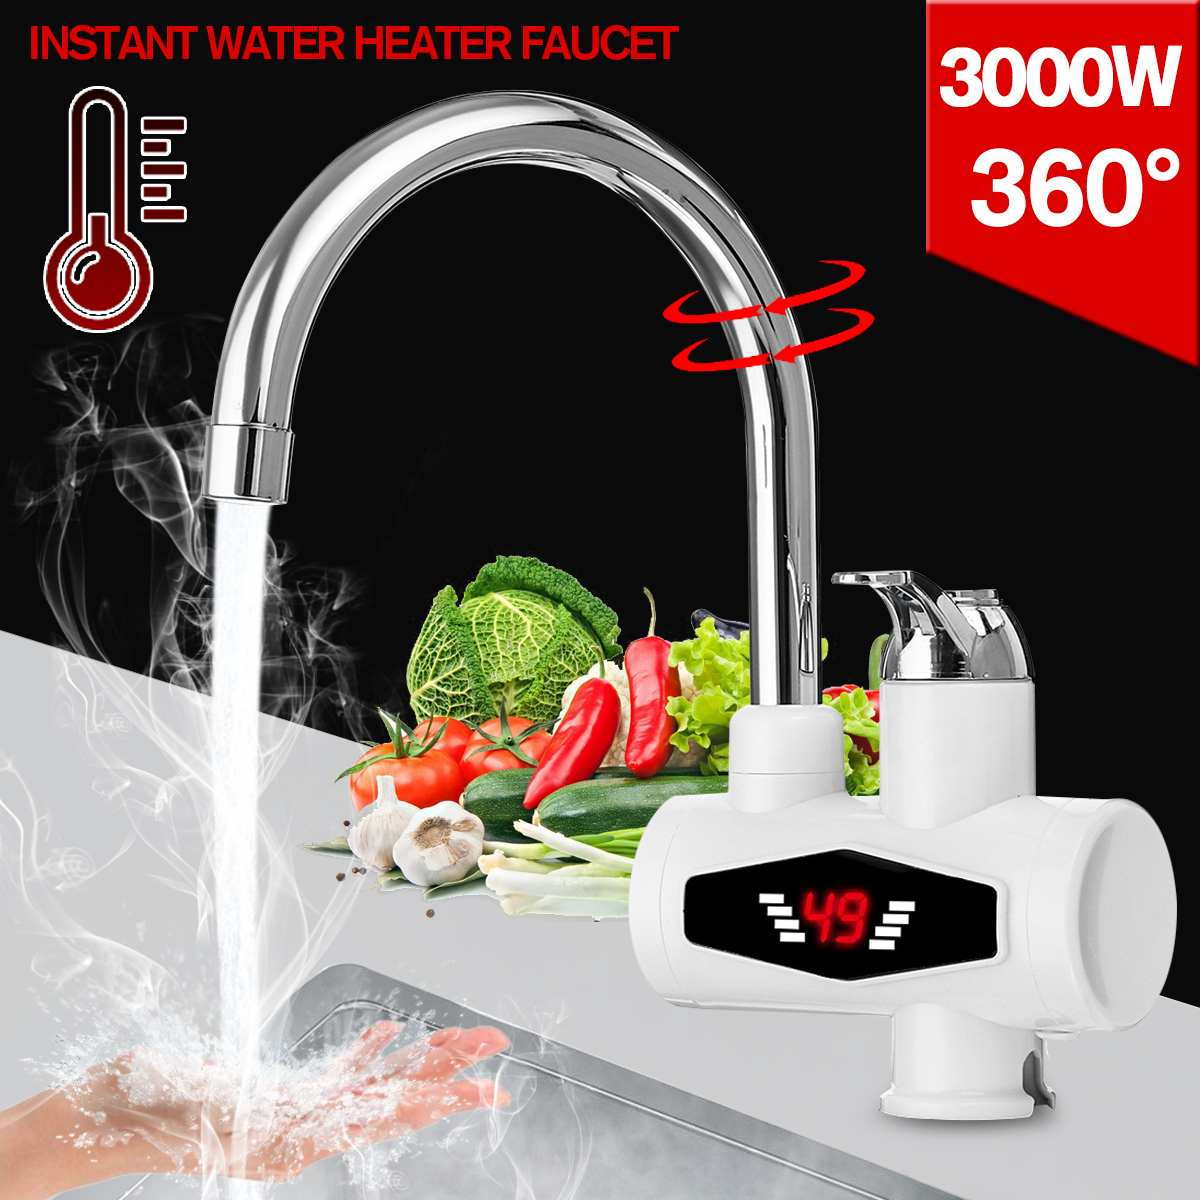 3000W Instant Tankless Electric Hot Water Heater Faucet Kitchen Instant Heating Tap Water Heater With LED AU Plug